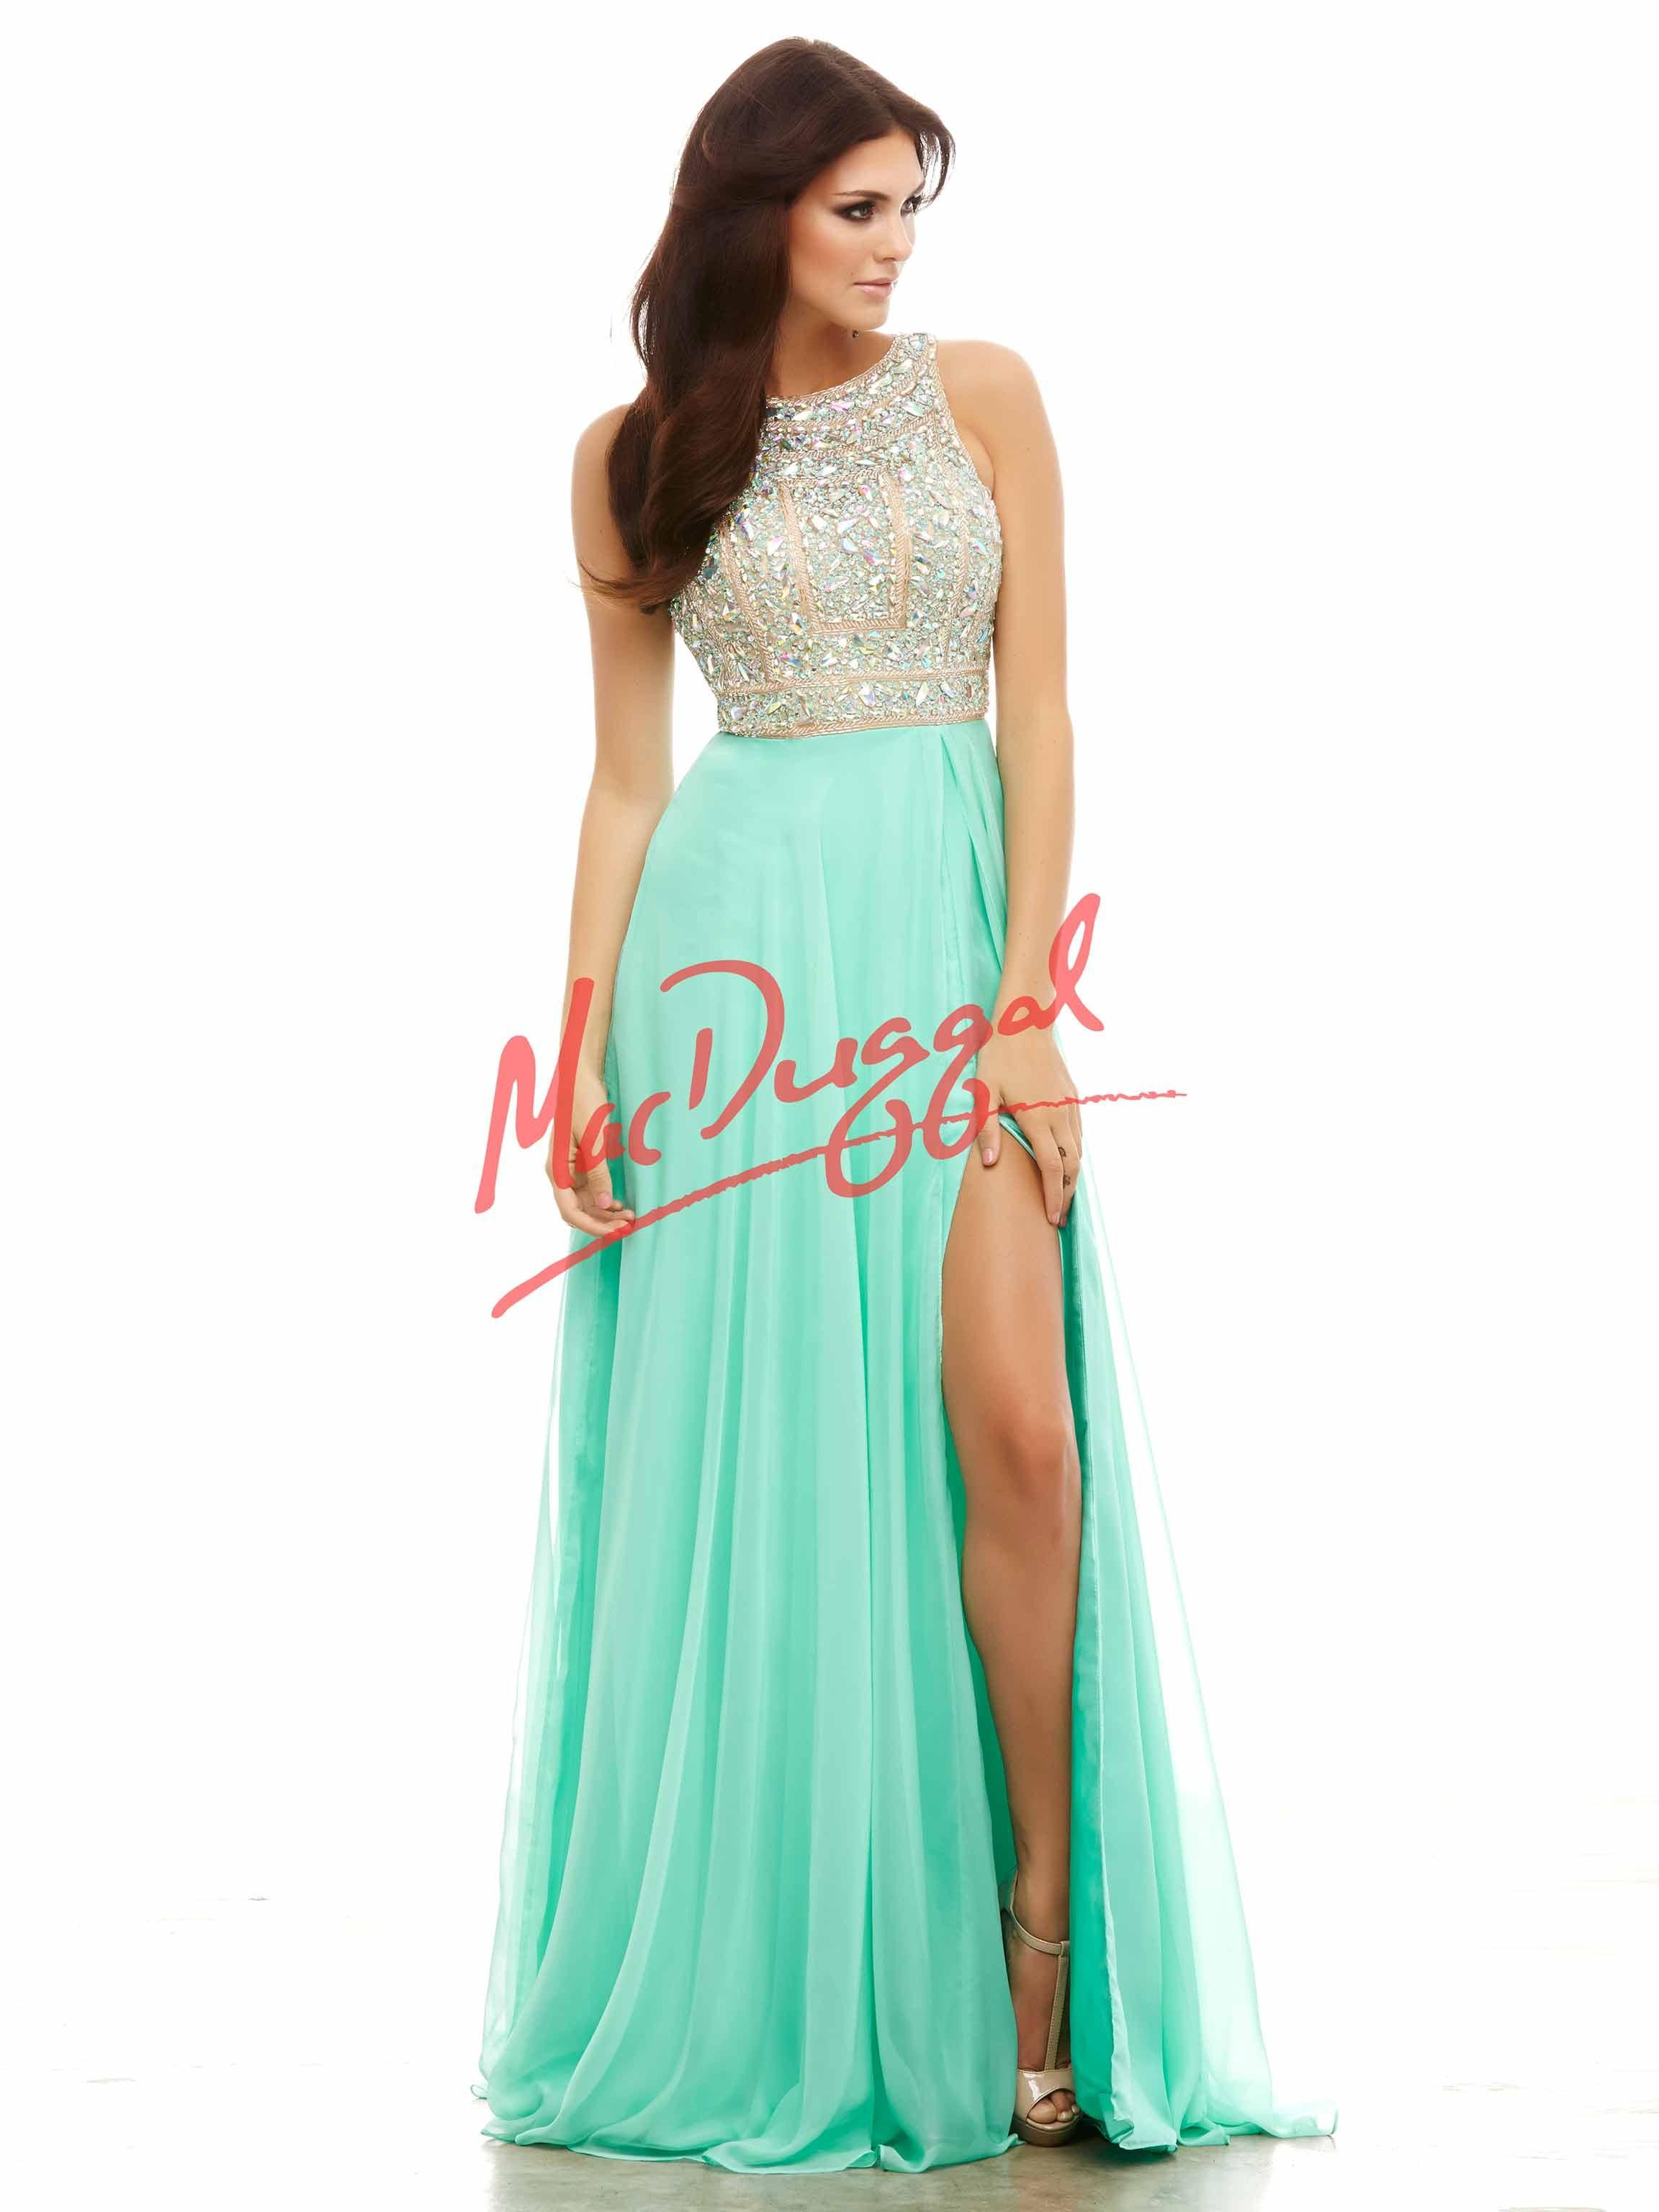 Style 40403A chiffon prom dress from Mac Duggal offers high slit skirt and crystal encrusted high neck